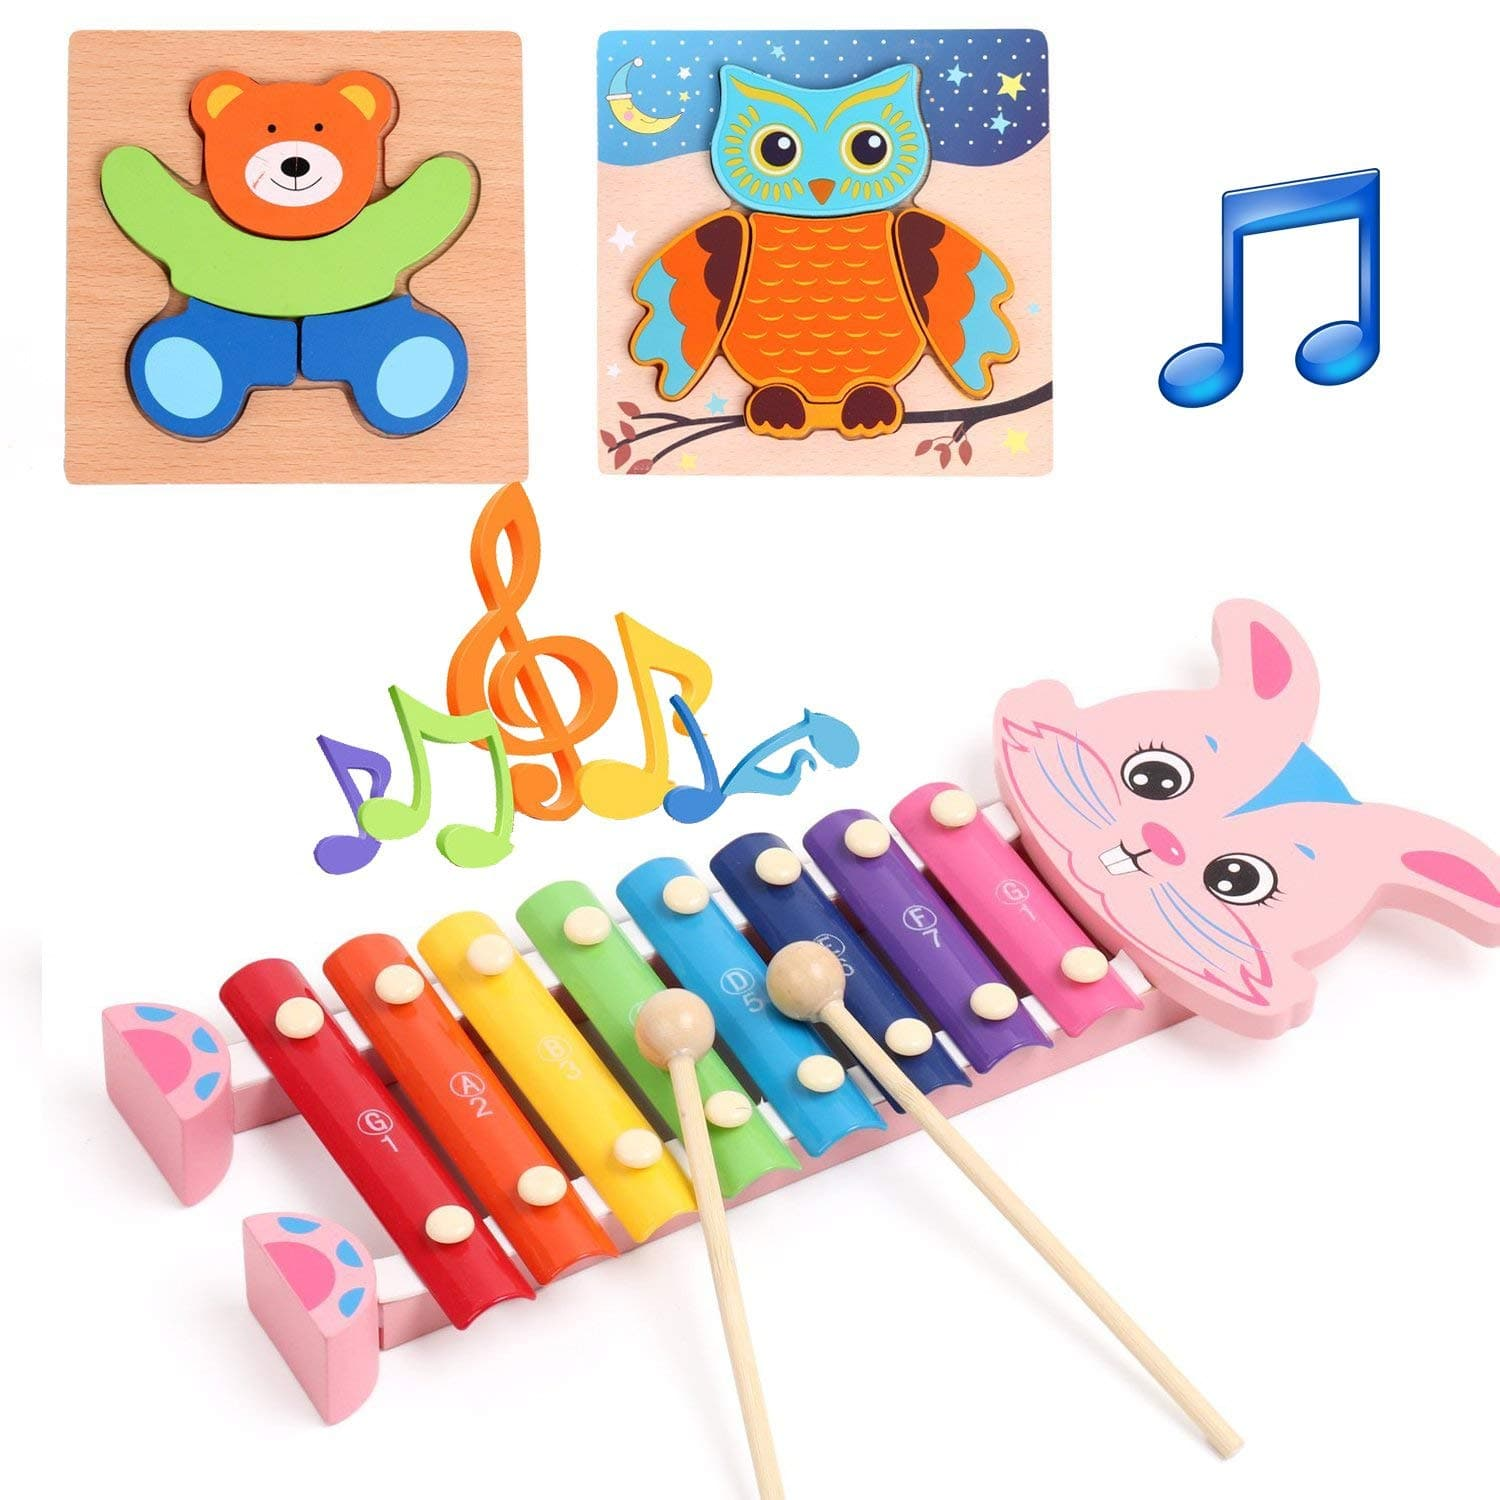 Amagoing Wooden Xylophone, Rabbit Hand Knock Percussion Musical Instruments Toys for Children Kids Baby Toddlers [rabbit xylophone] $8.99